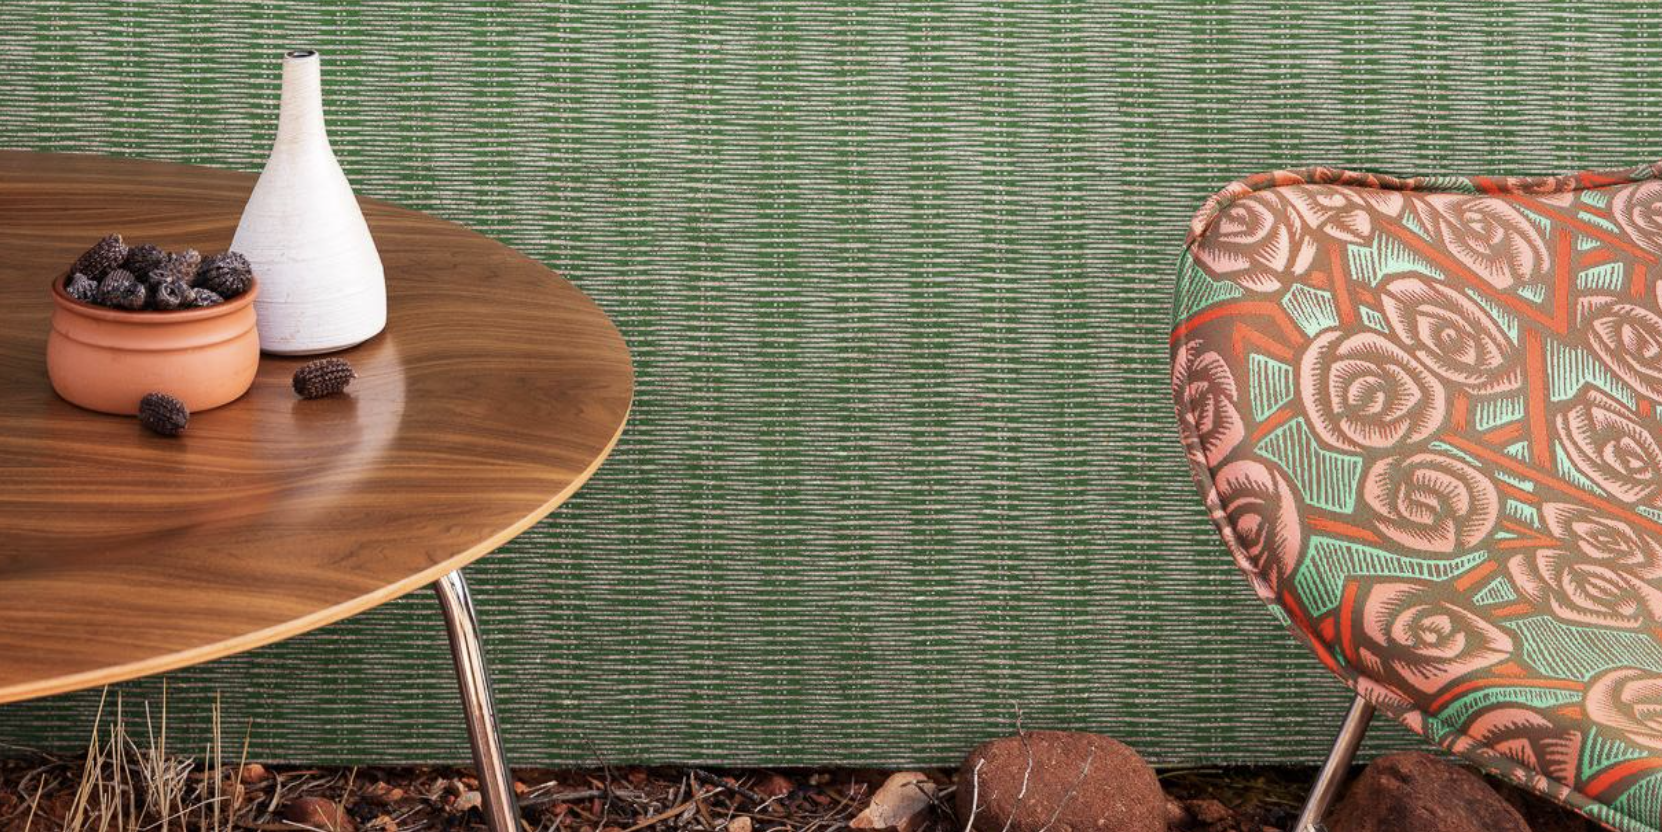 Australia's Woven Image makes acoustic wallpaper using 60% recycled PET